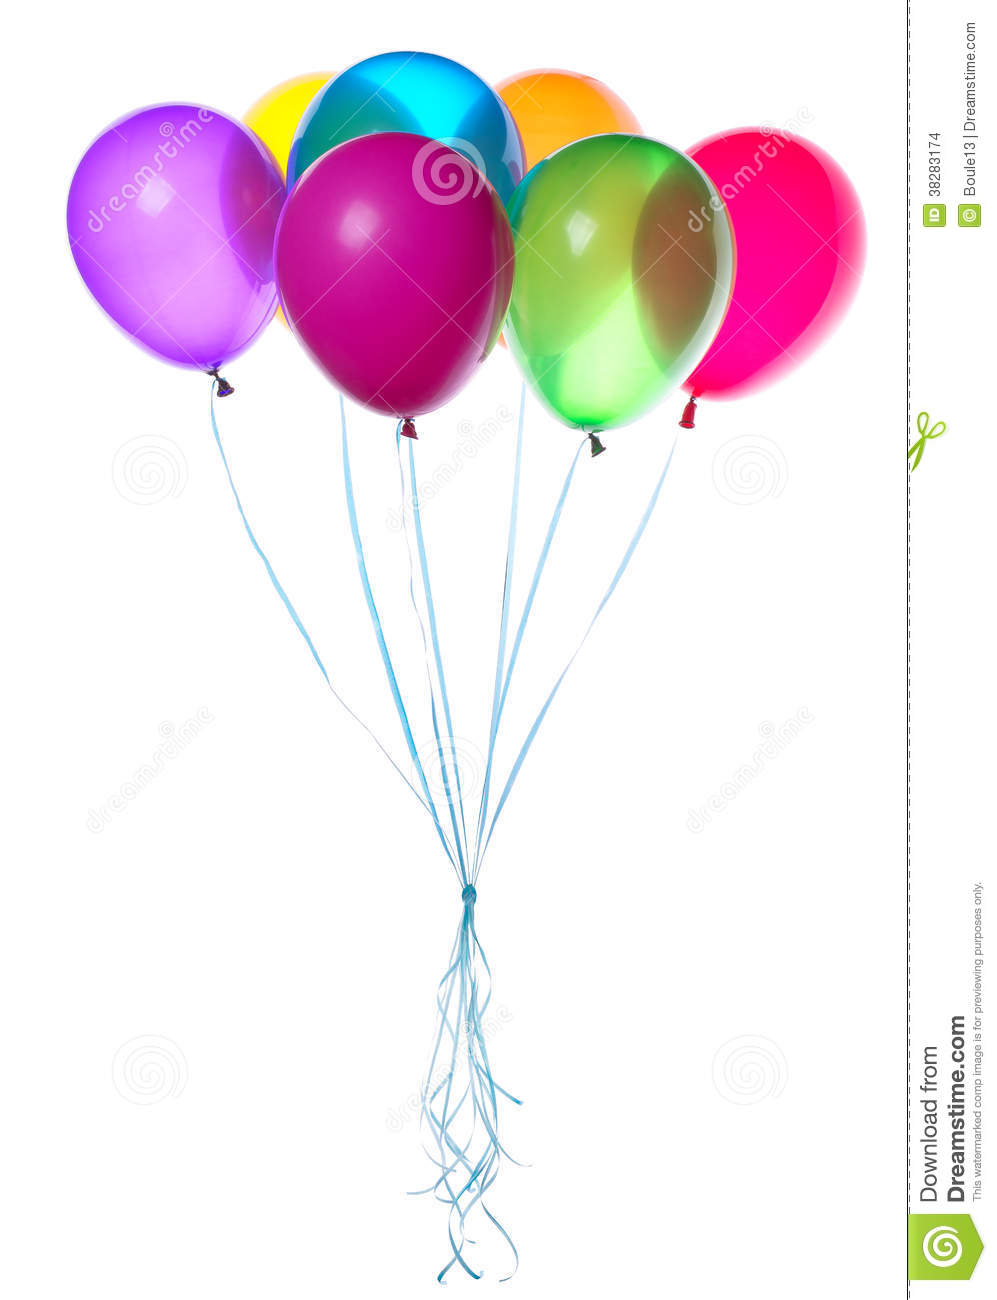 Quotes About Flying Balloons Quotesgram